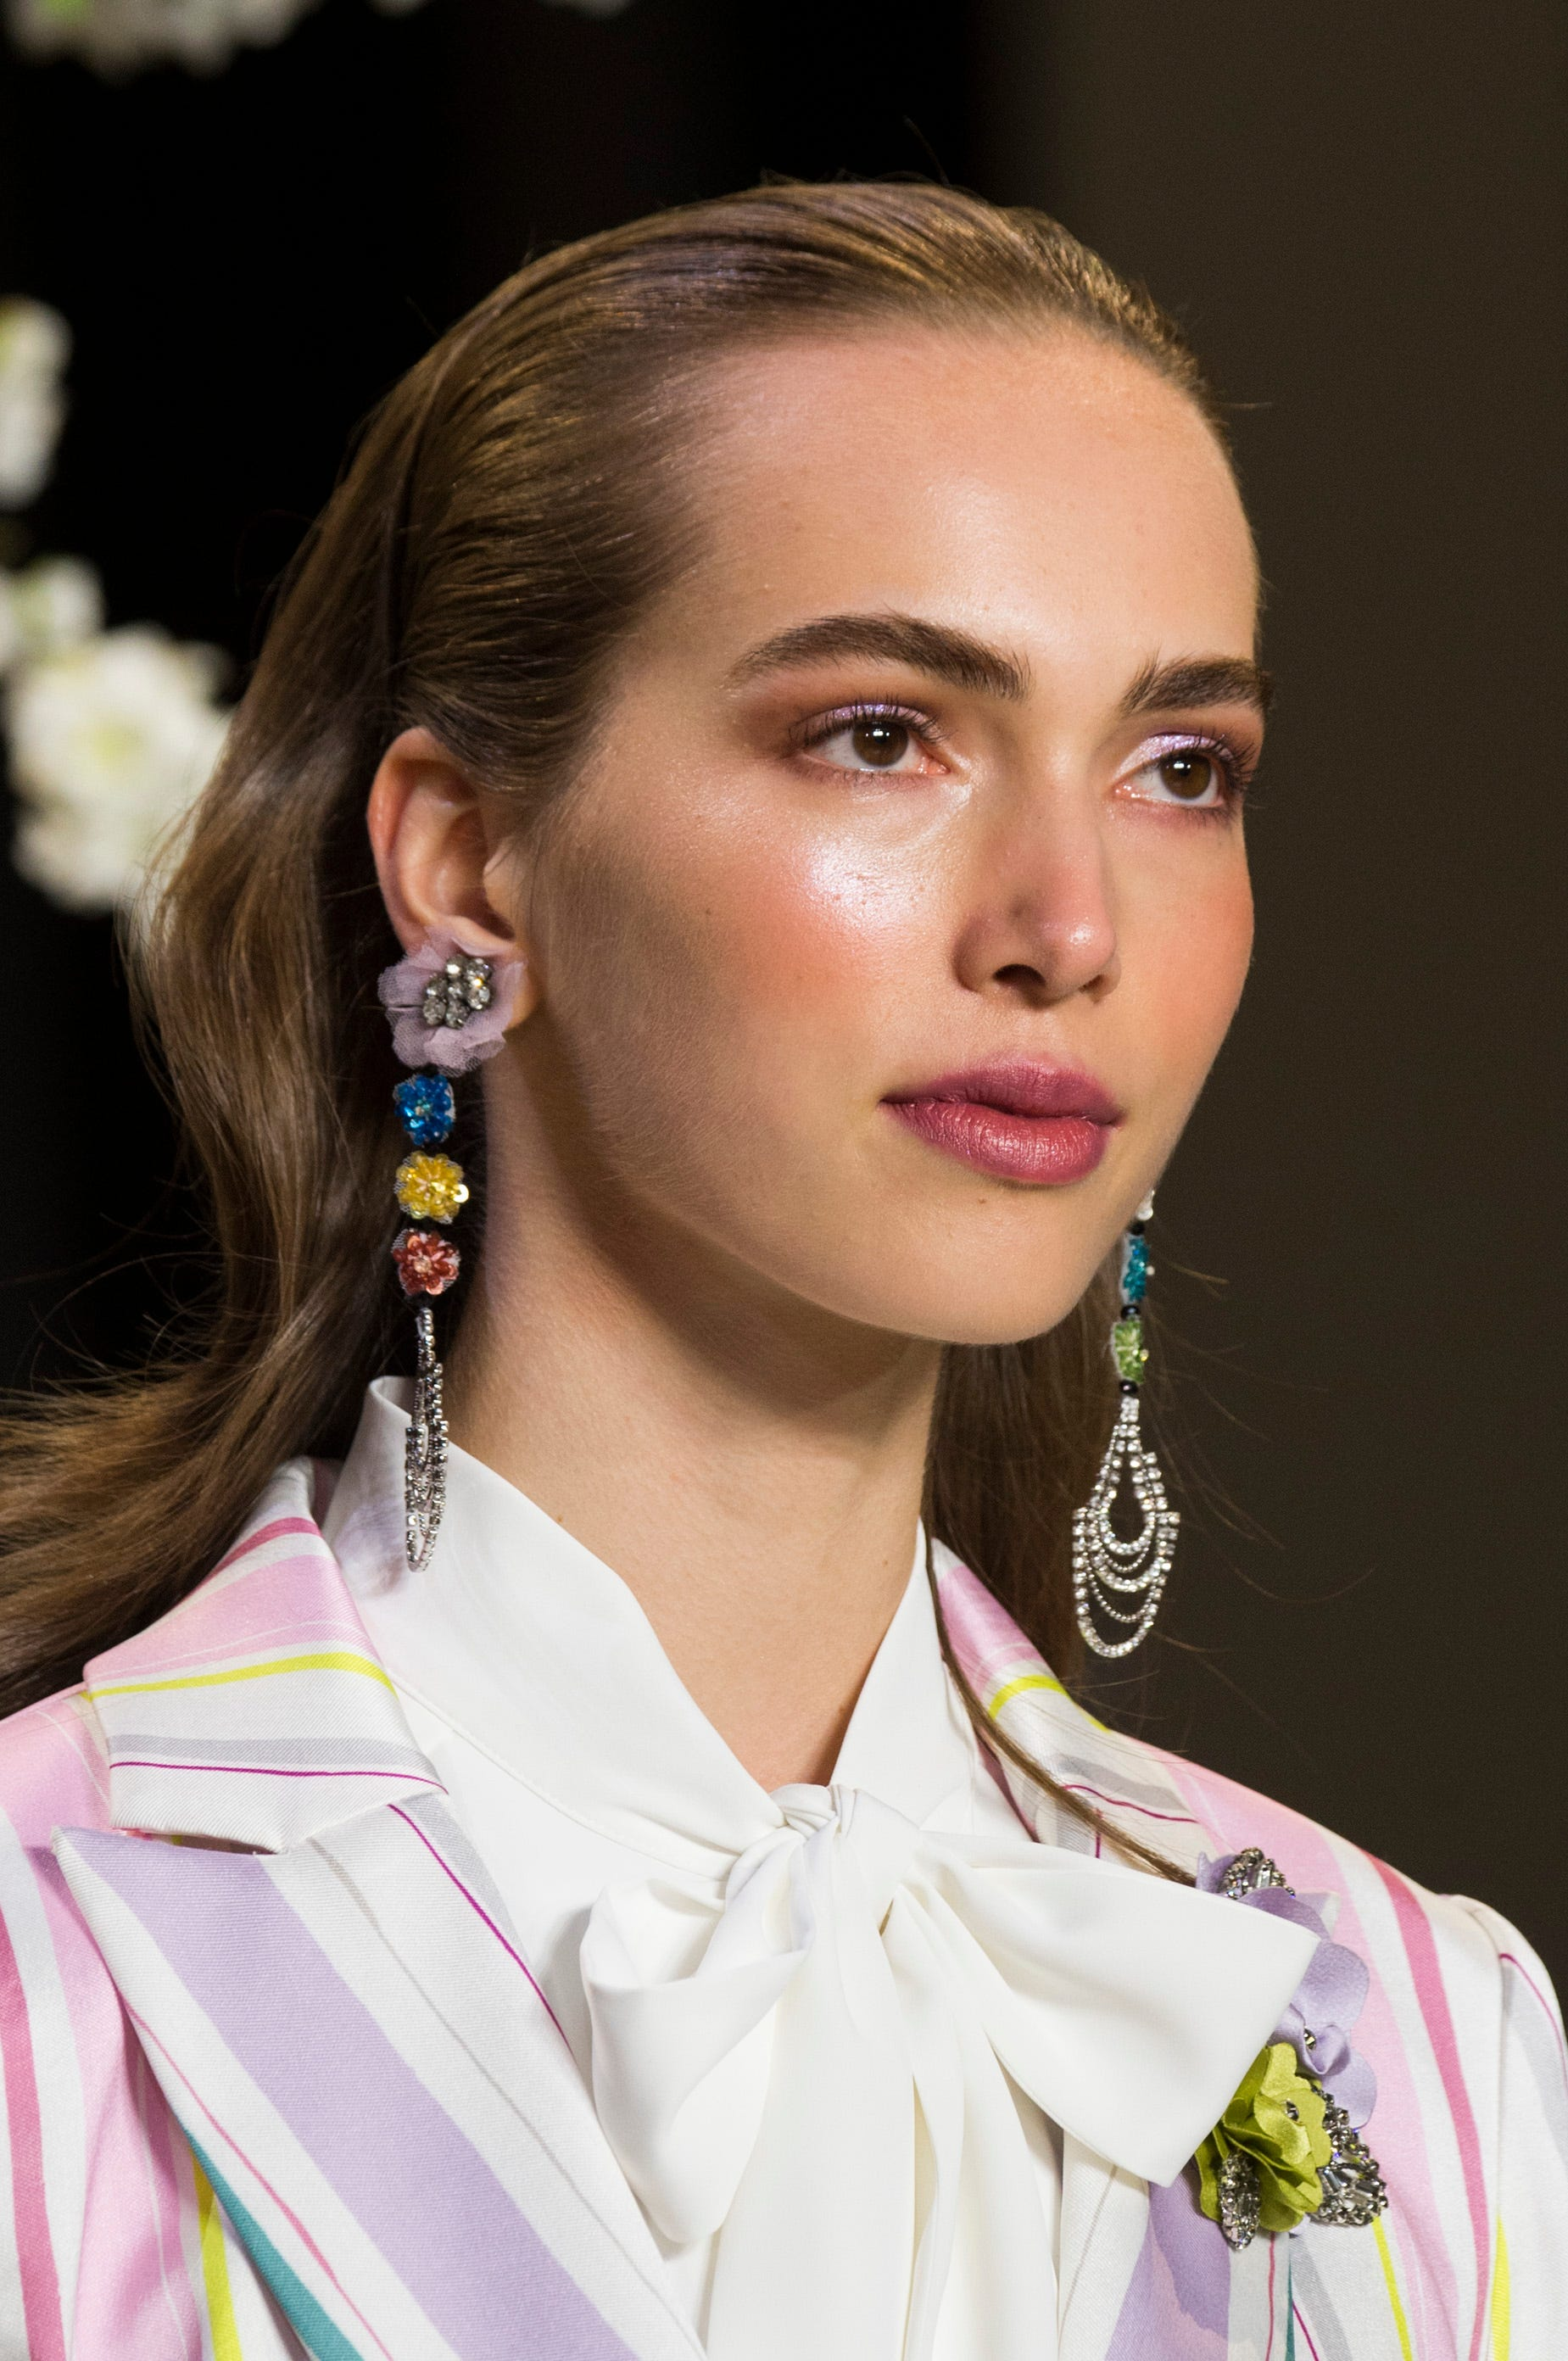 Discover the 3 catwalk-inspired hair looks you'll be asking for this summer recommend